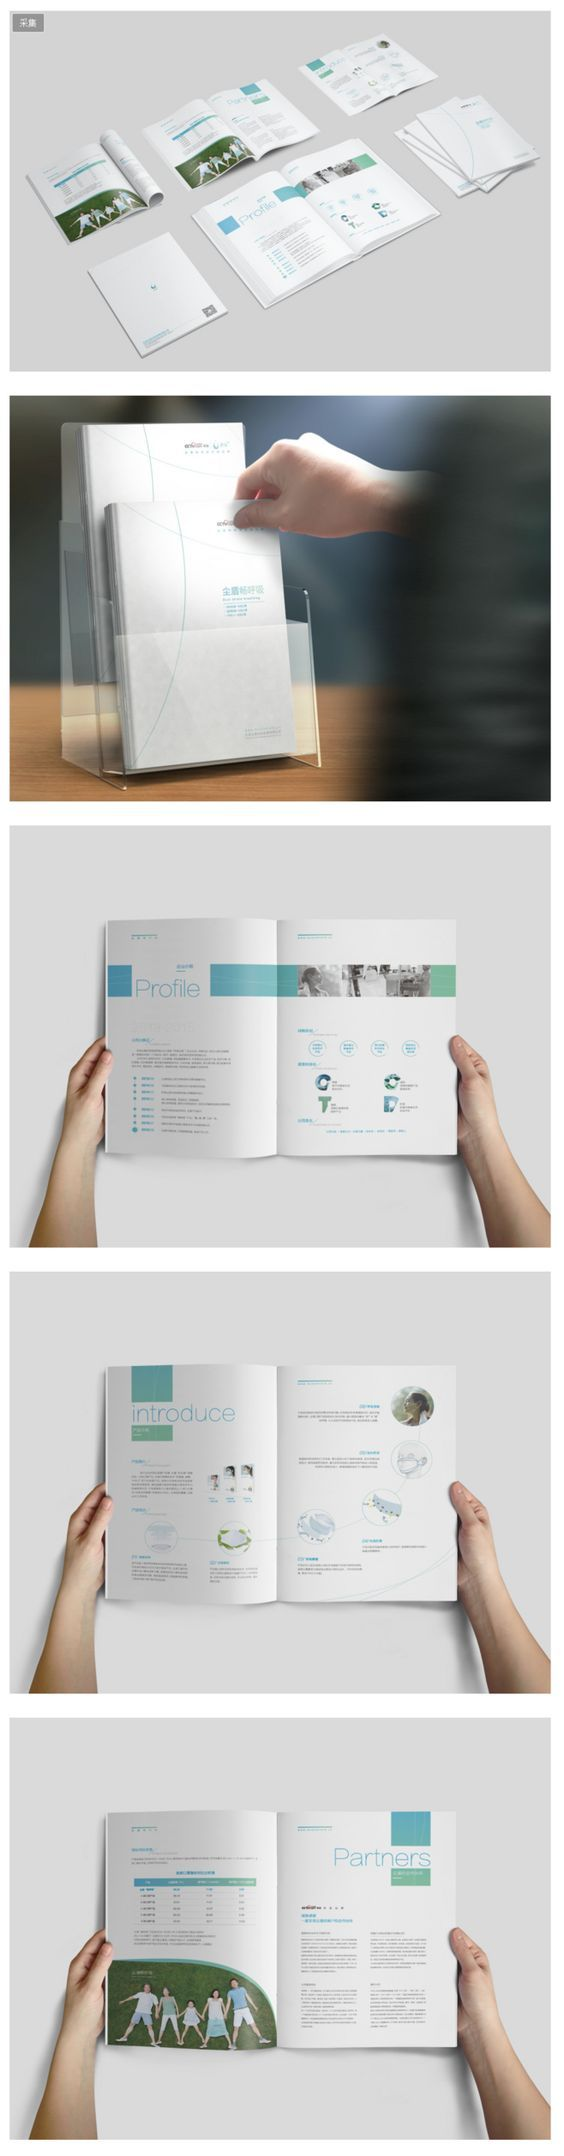 A Medical Brochure Should Have A Clean And Sleek Look To It